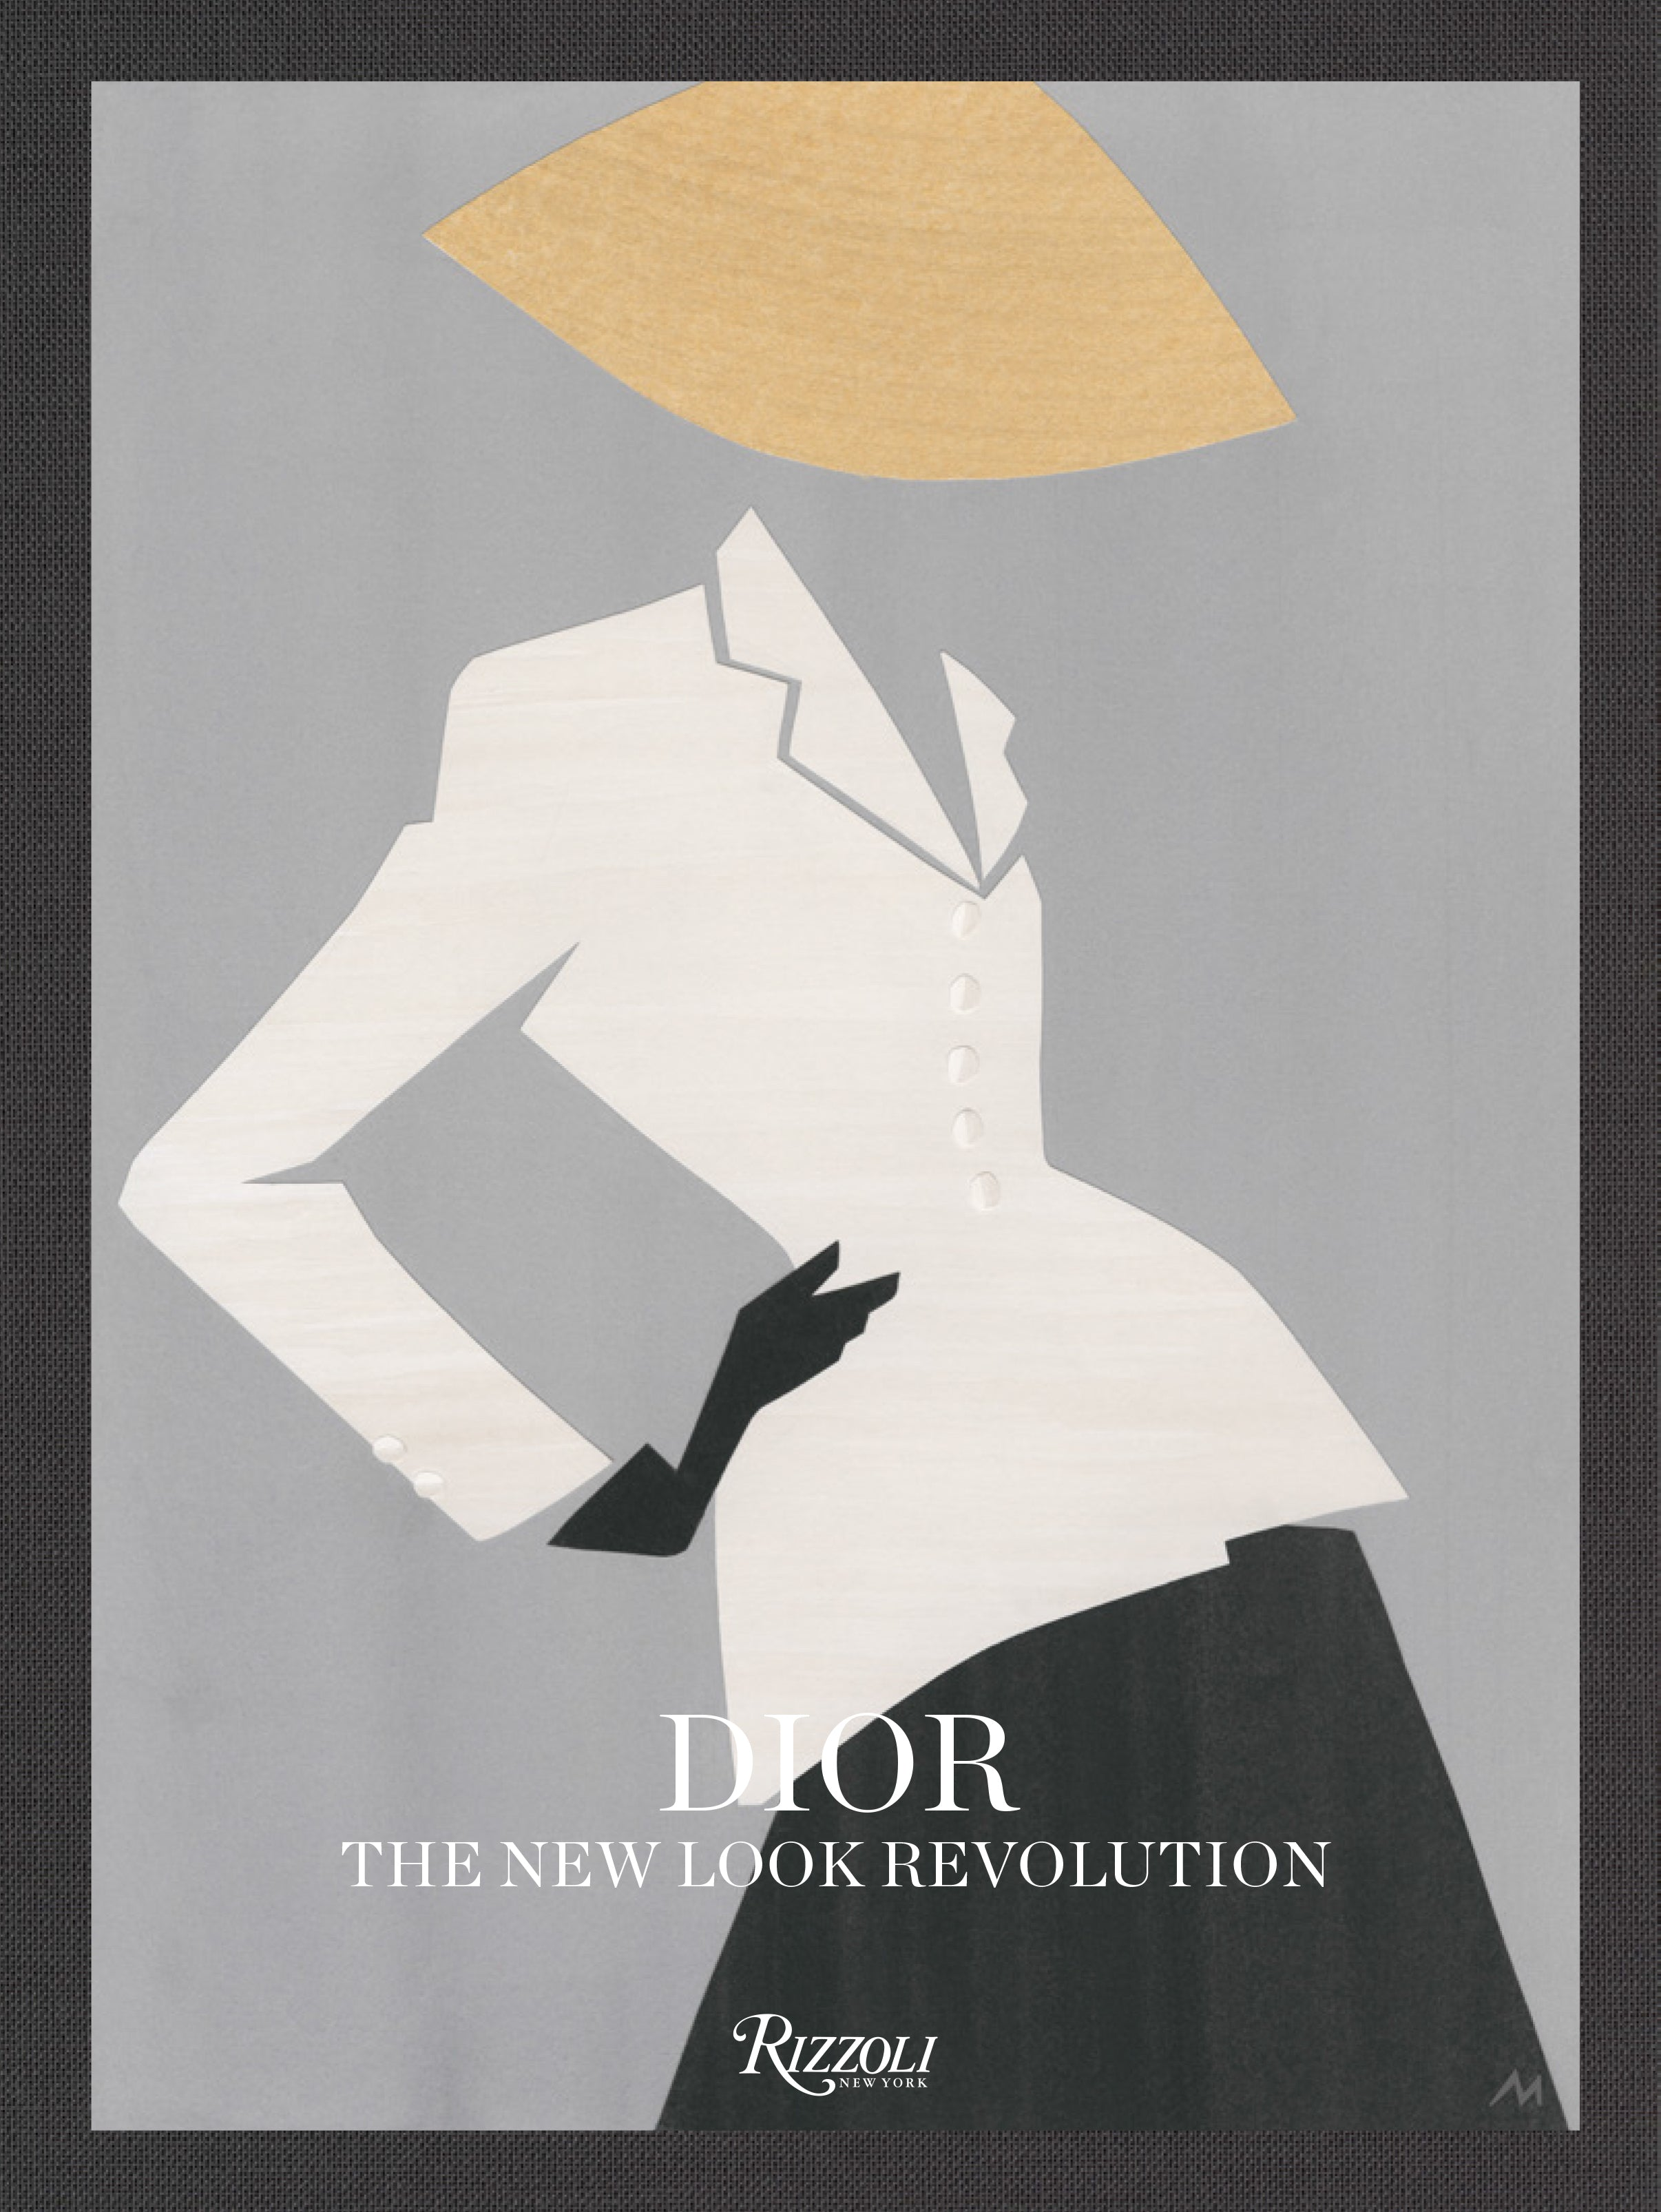 Dior: The New Look Revolution - CARLYLE AVENUE